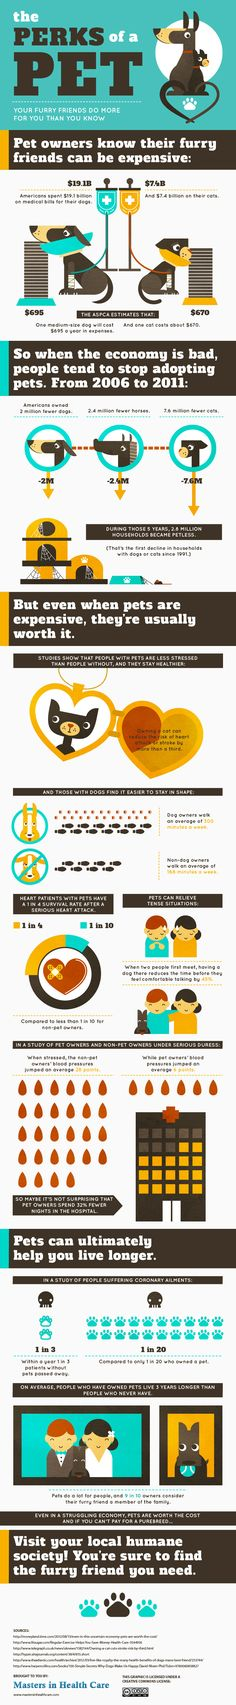 Perks of Pets Infographic